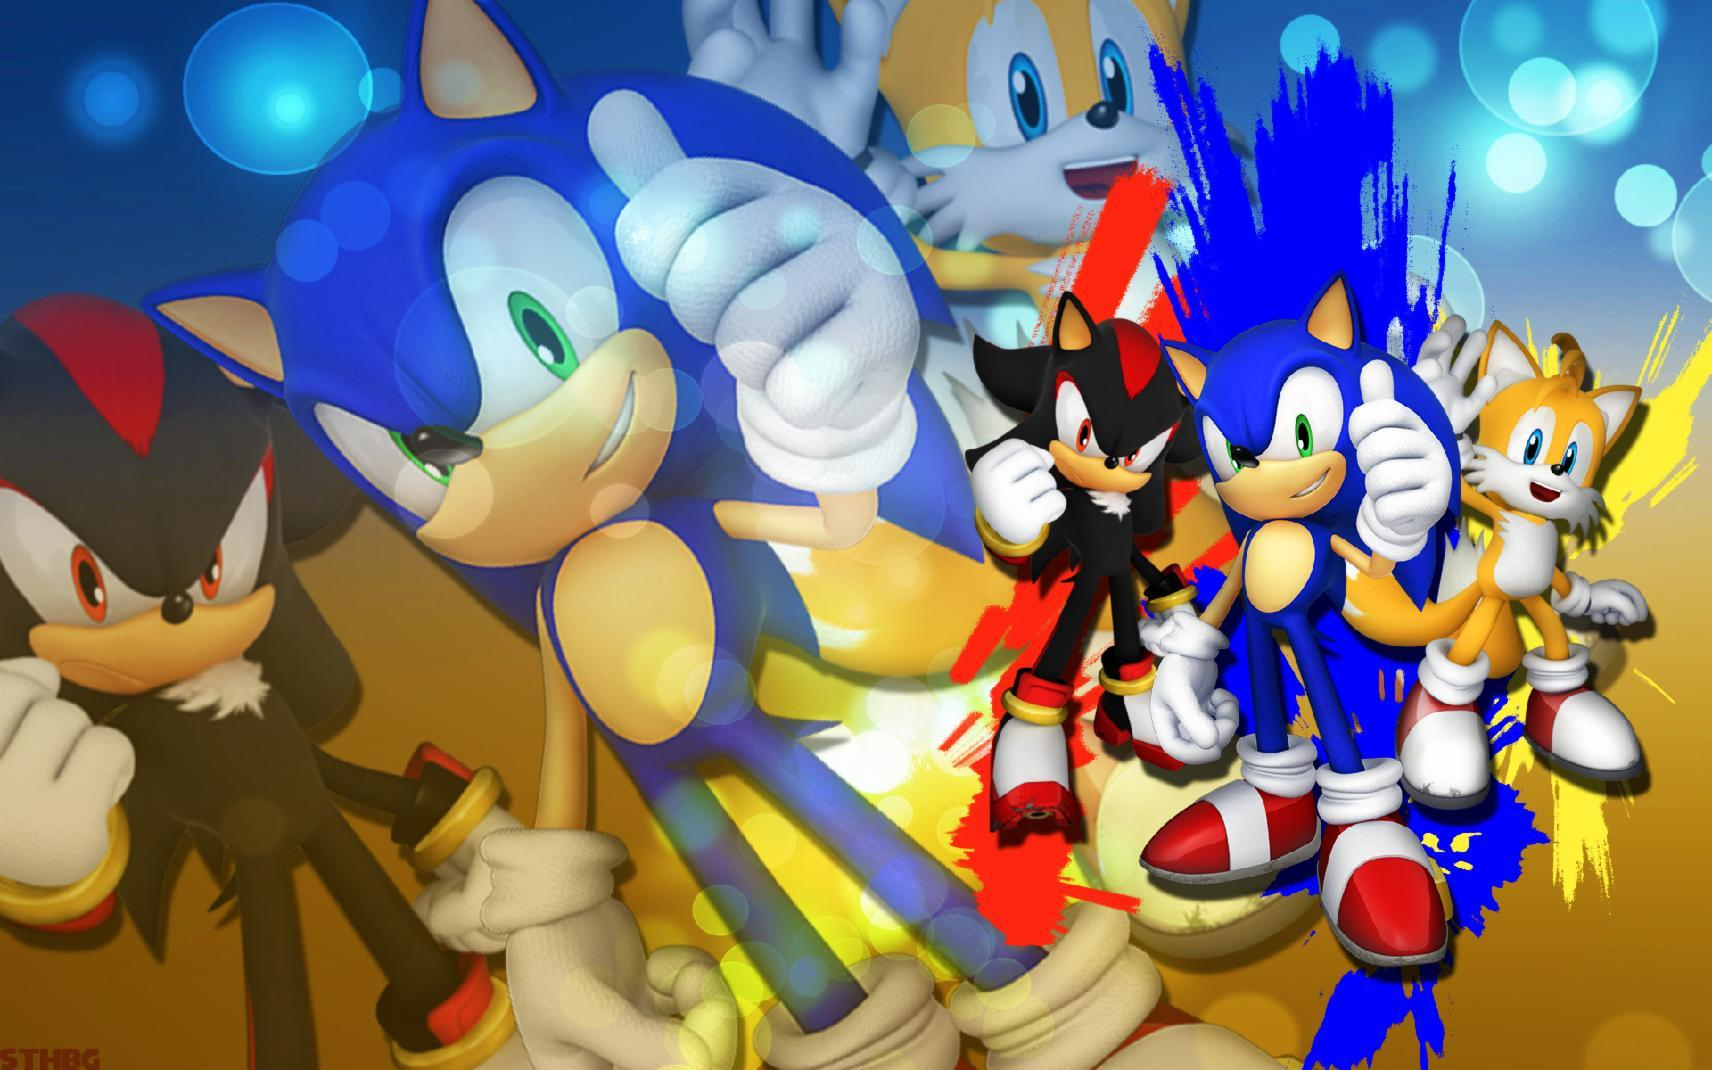 """Yes Sonic I will go out with you"" you reply happily as you wrap your arms around Sonic and give him a kiss on the lips. As you release him you and Sonic head out towards your house to spend time with each other with no one around but you and him. Are you happy about this ending?"